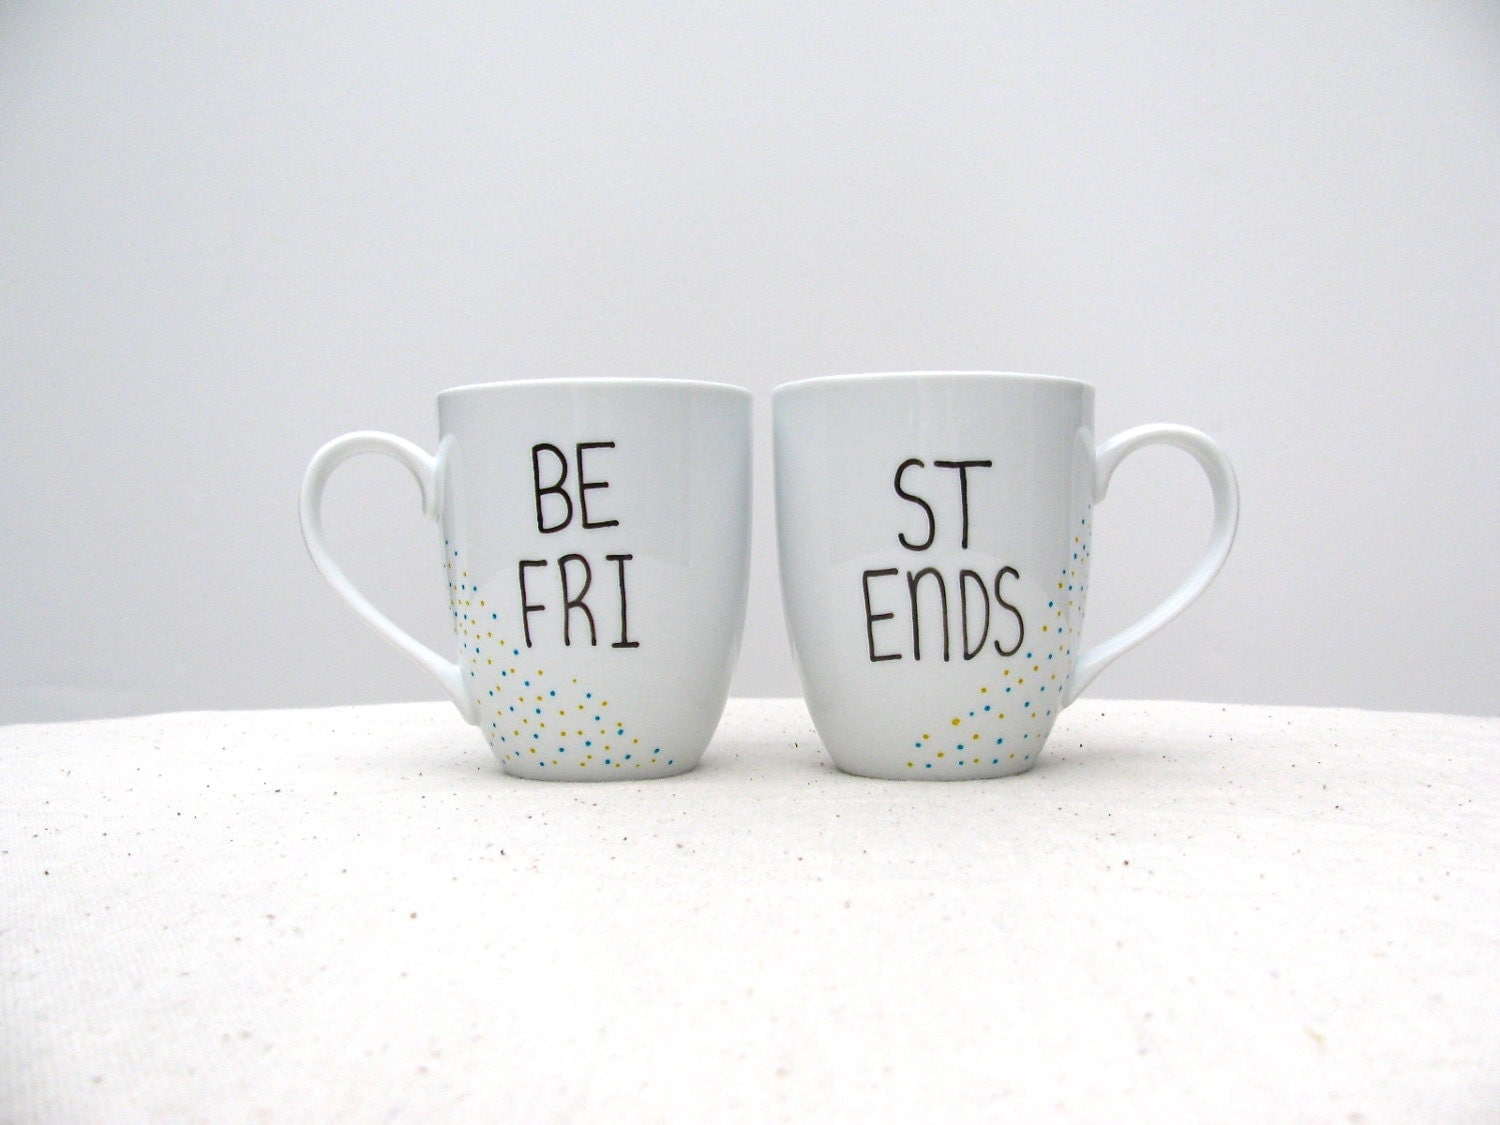 Best Friend Mugs Be Fri And St Ends